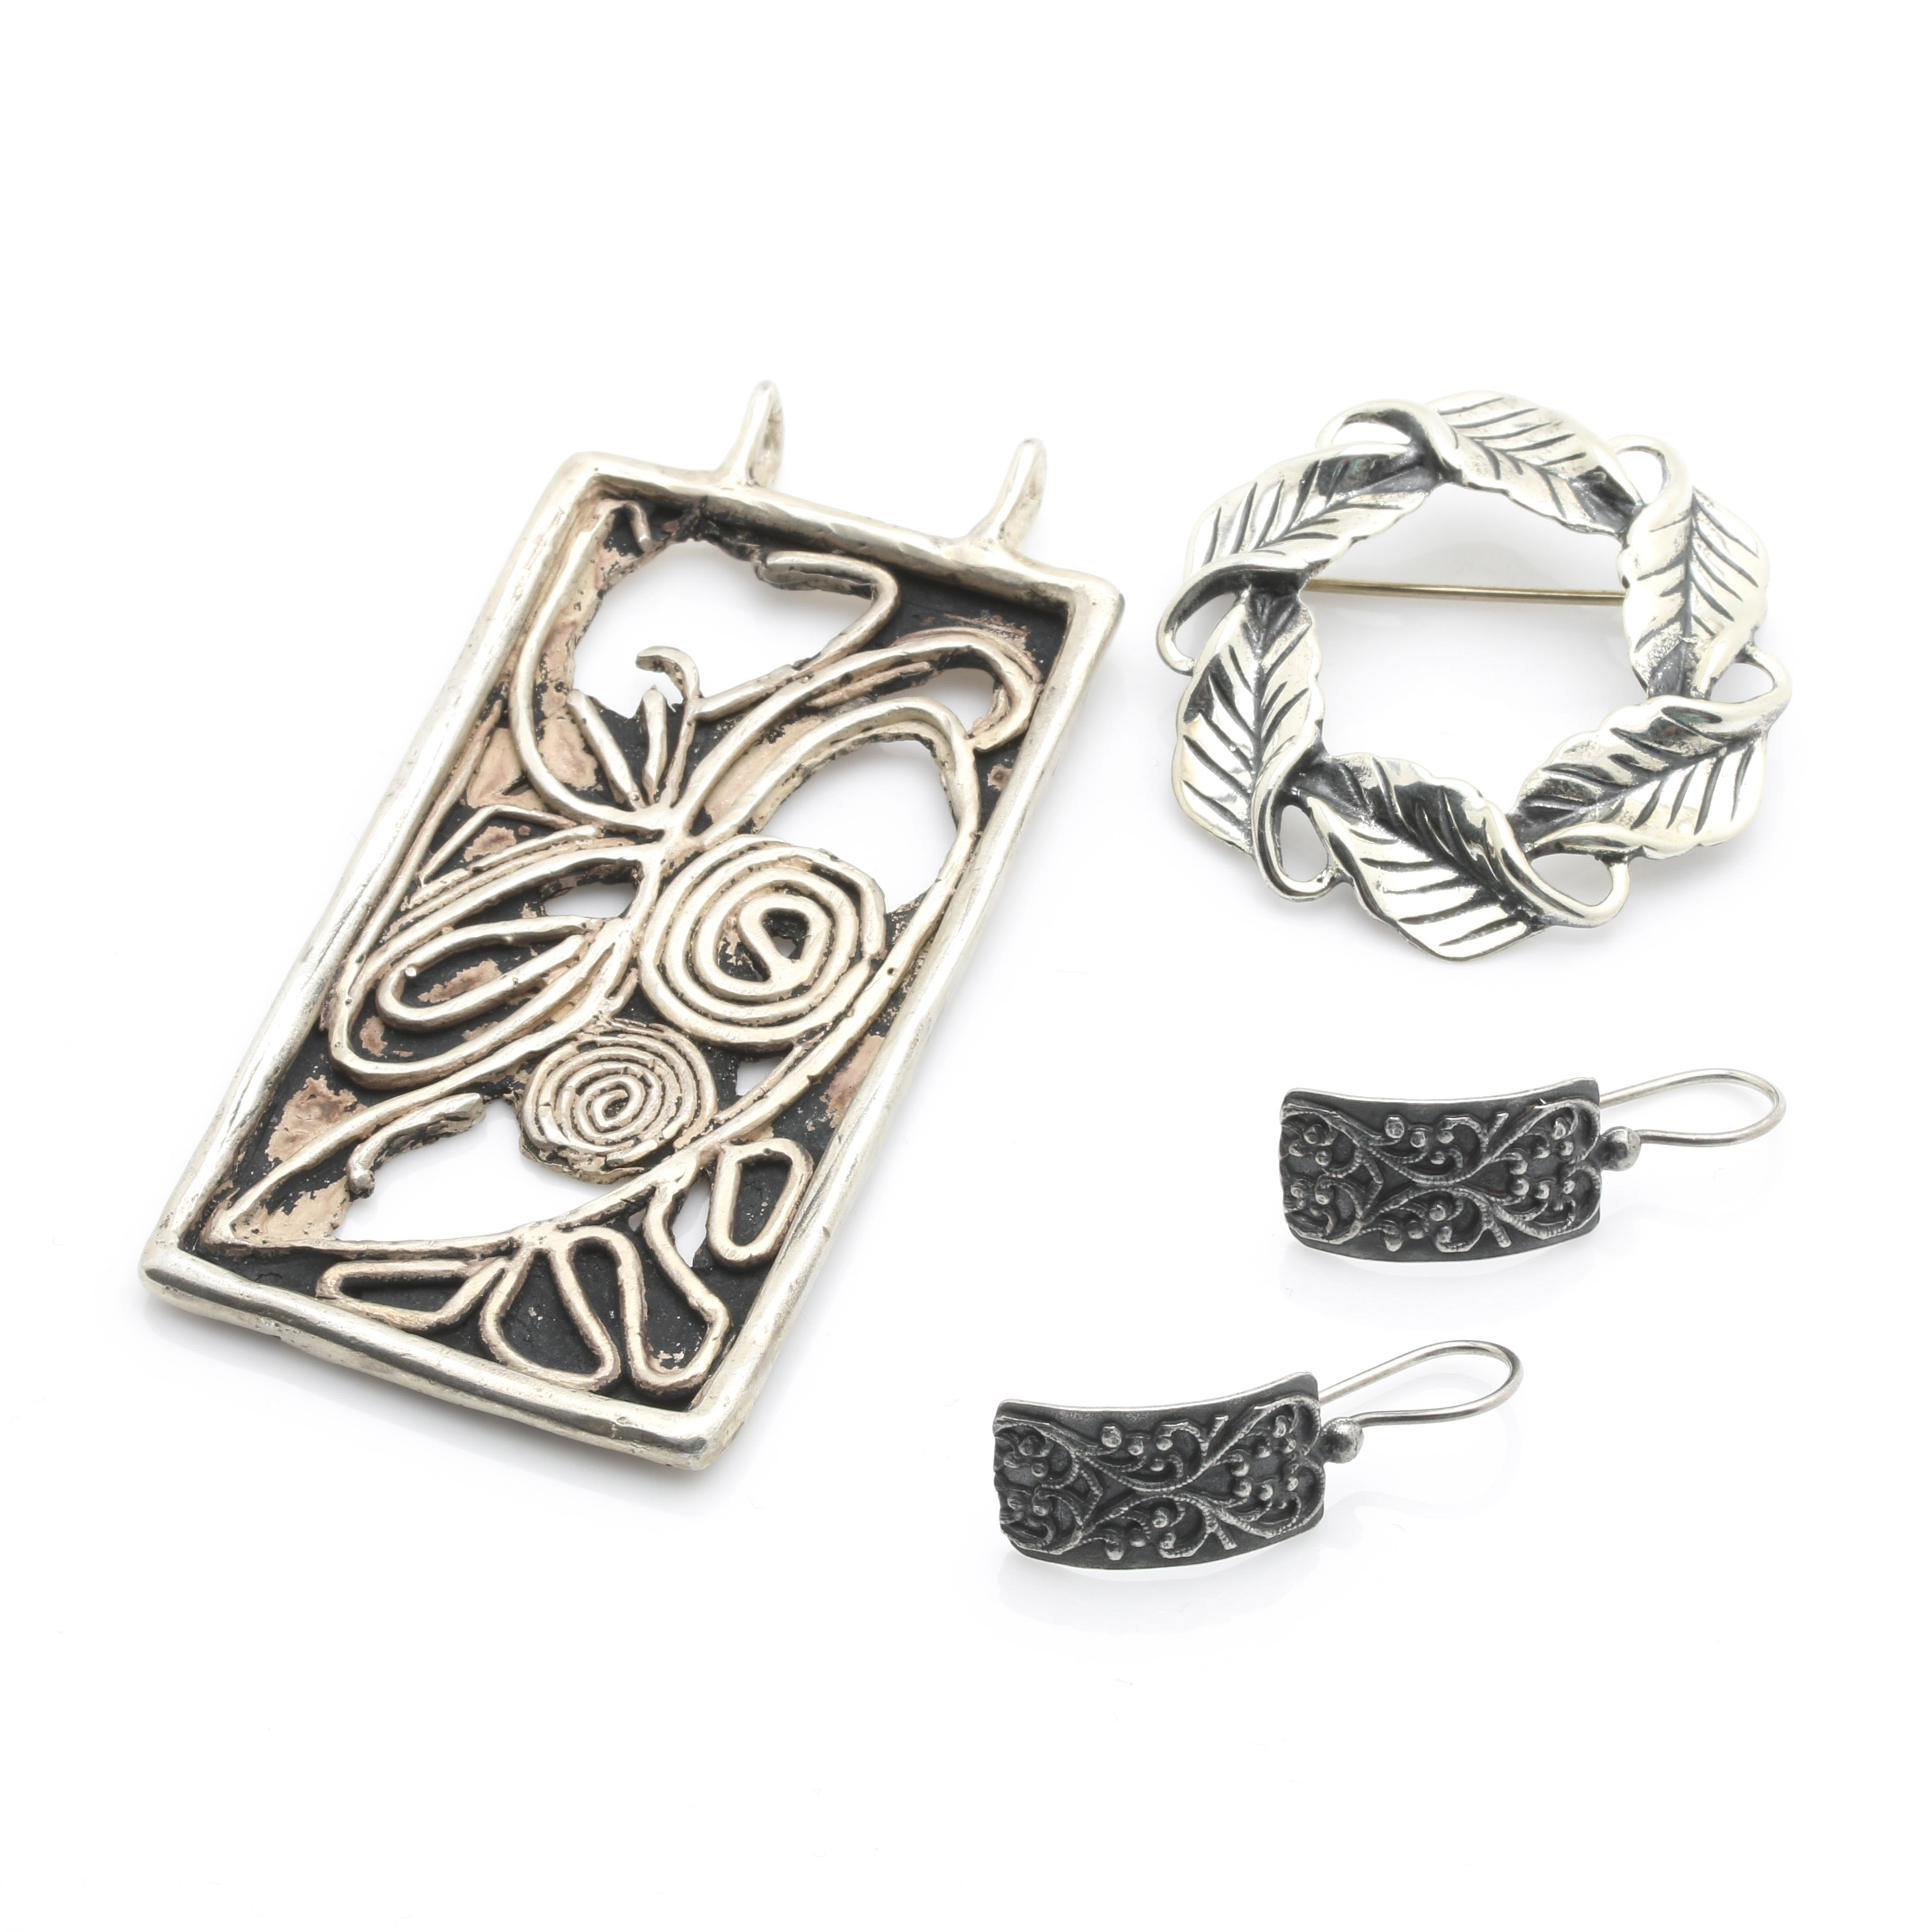 Sterling Silver Jewelry Including Danecraft and Silpada